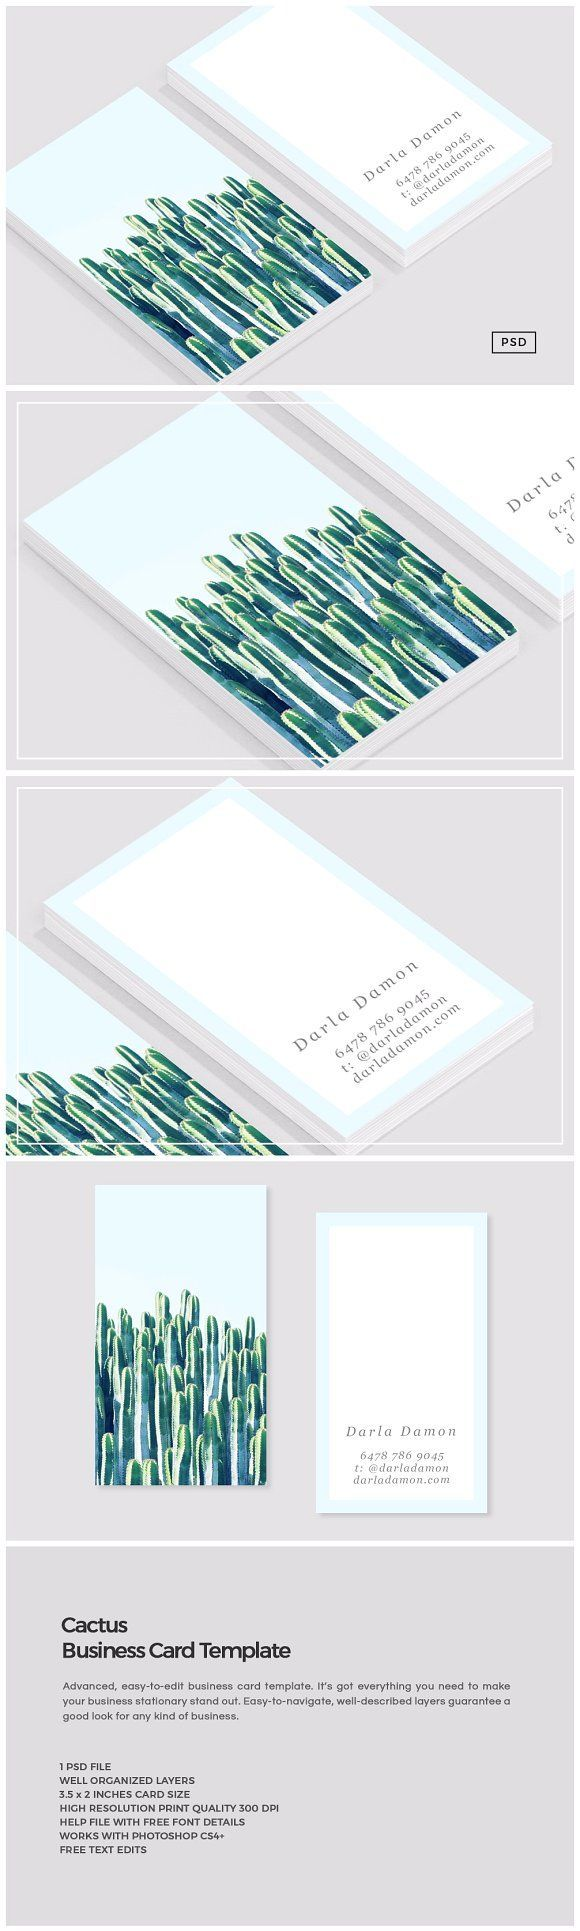 Cactus business card template by the design label on creativemarket cactus business card template by the design label on creativemarket free printable colourmoves